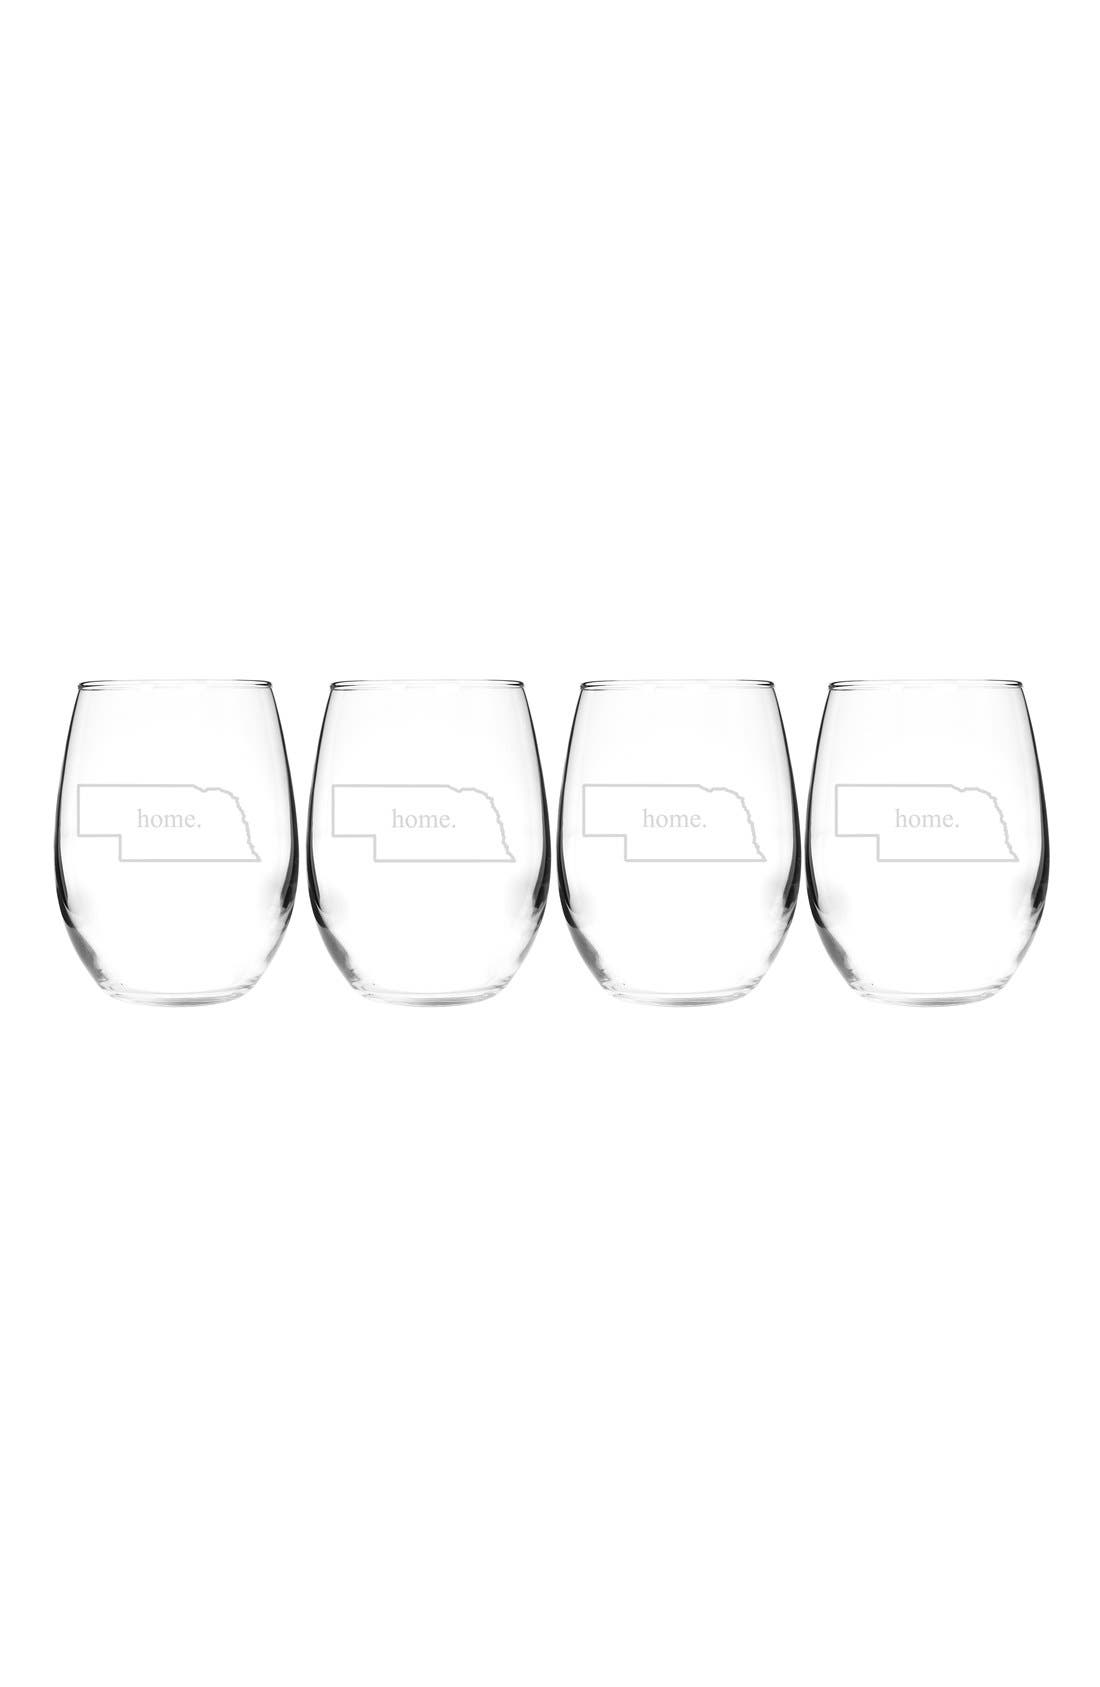 Home State Set of 4 Stemless Wine Glasses,                             Main thumbnail 30, color,